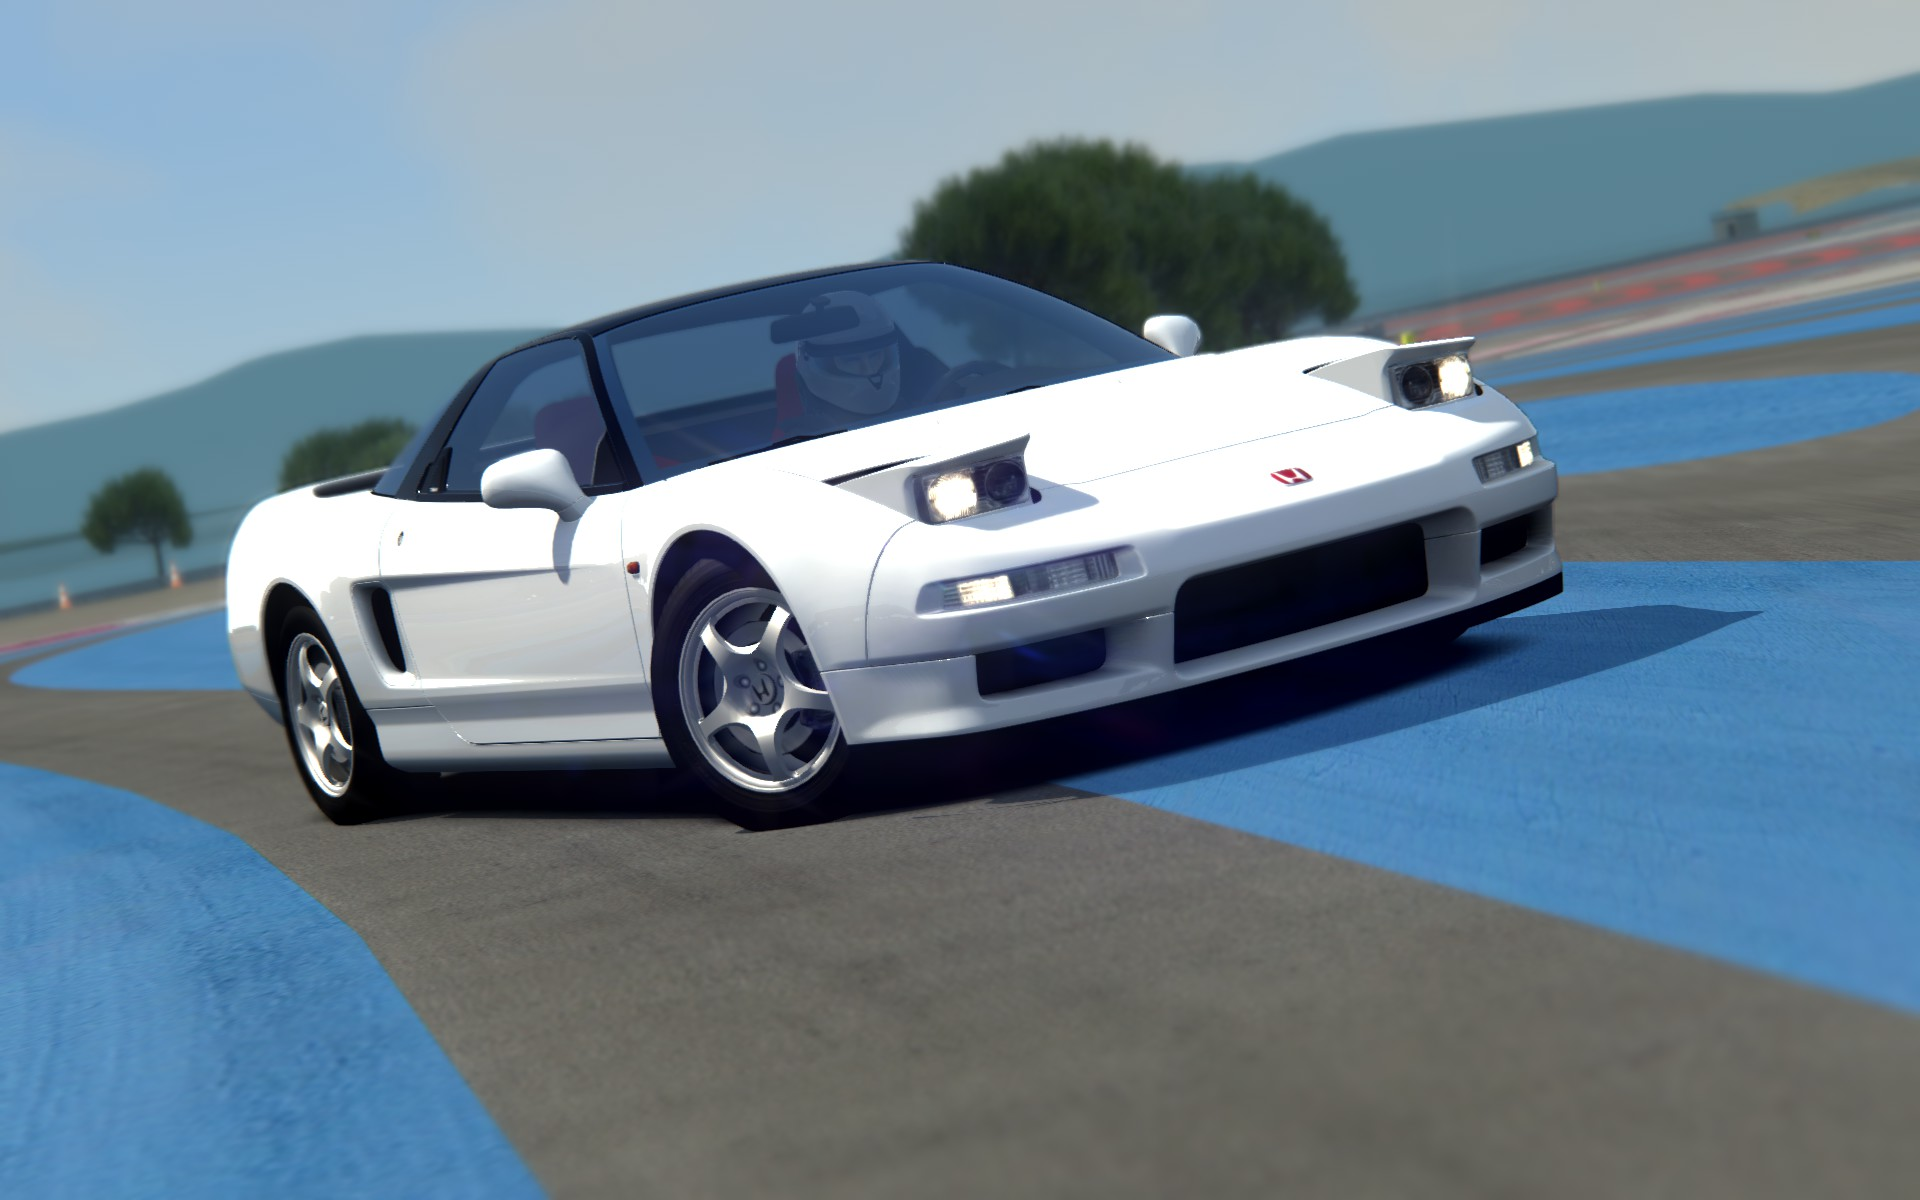 Get Assetto Corsa at http://store.steampowered.com/app/244210/